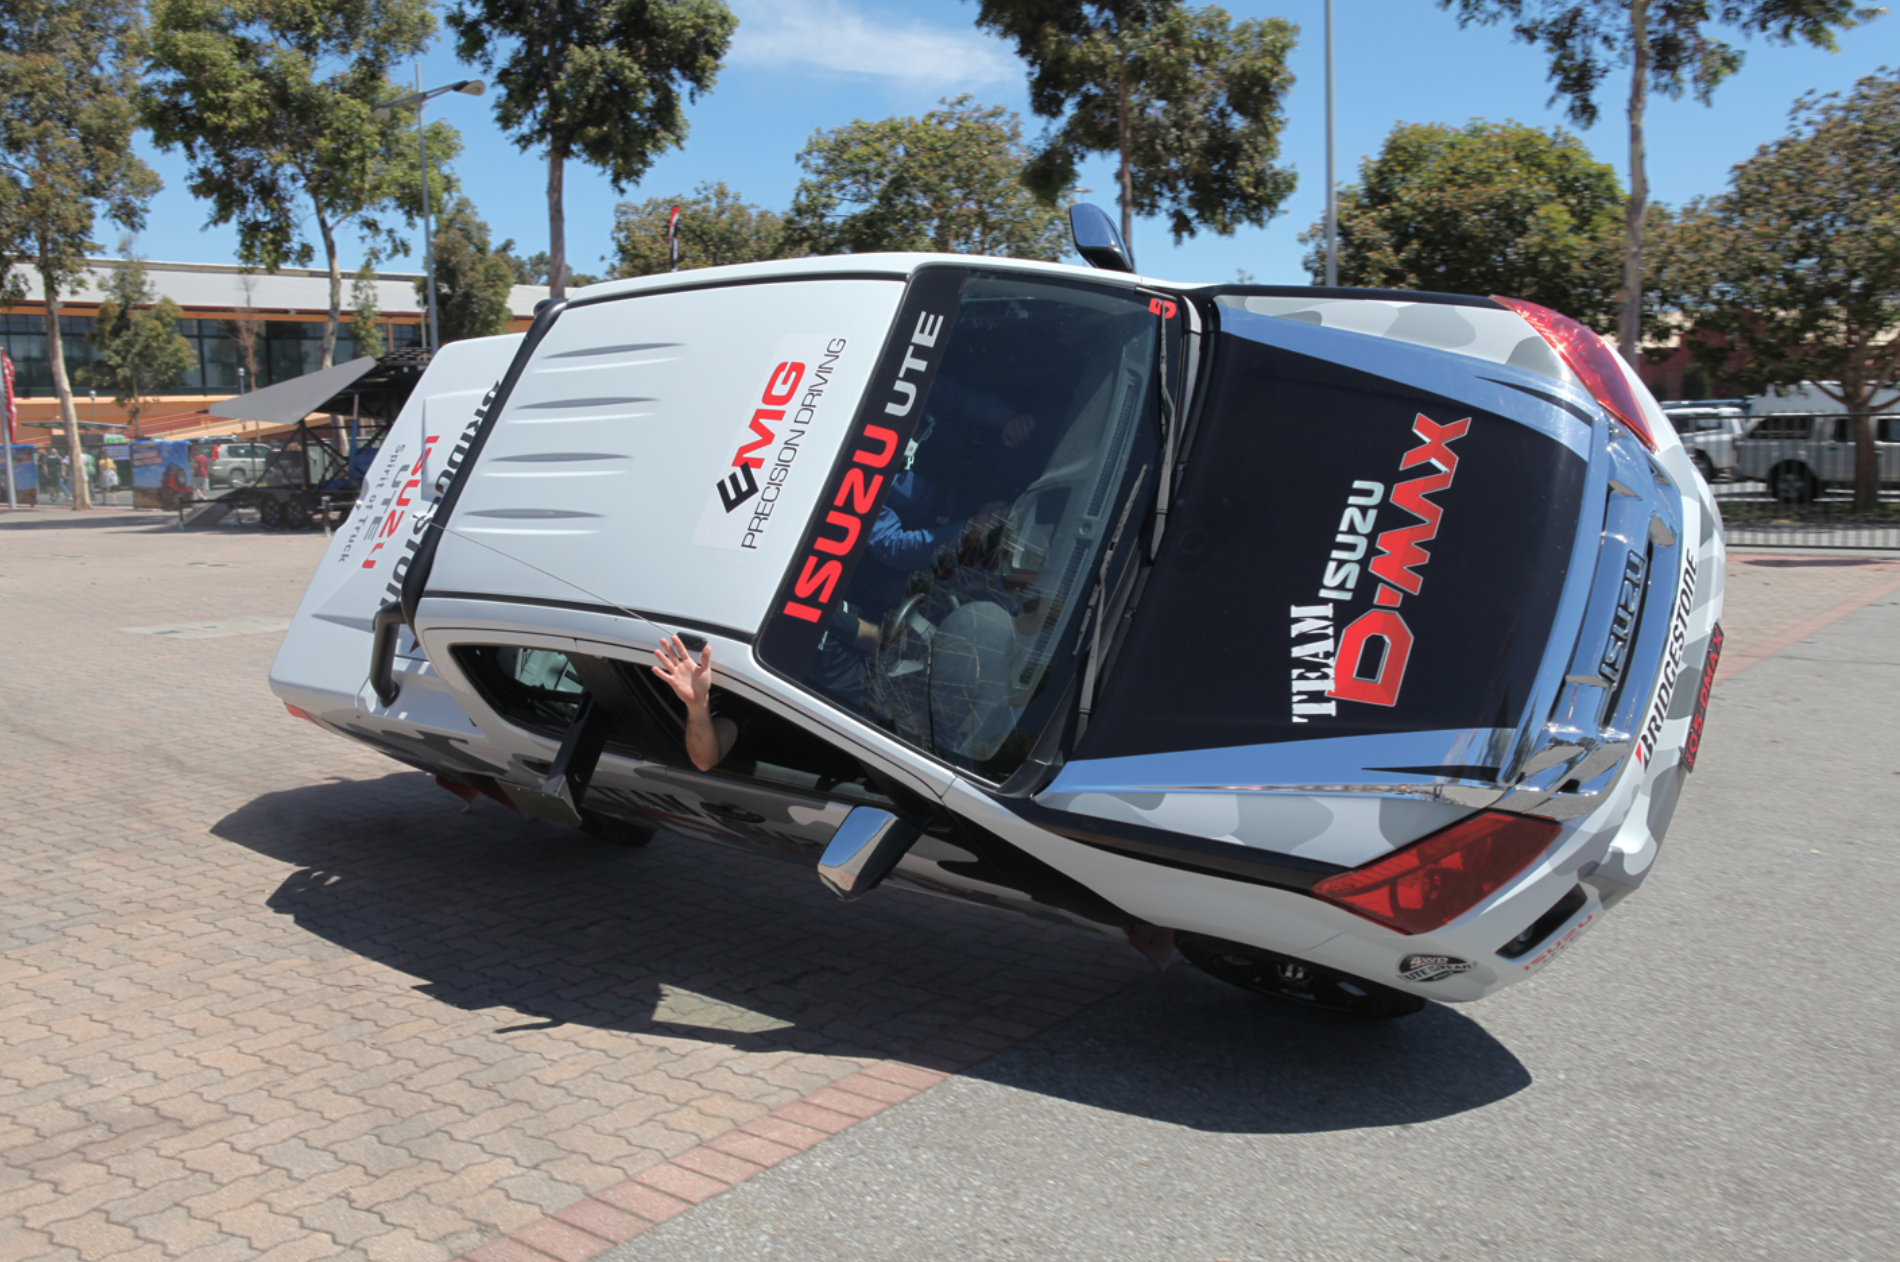 Adelaide 4WD & Adventure Show is on this weekend – don't miss it!